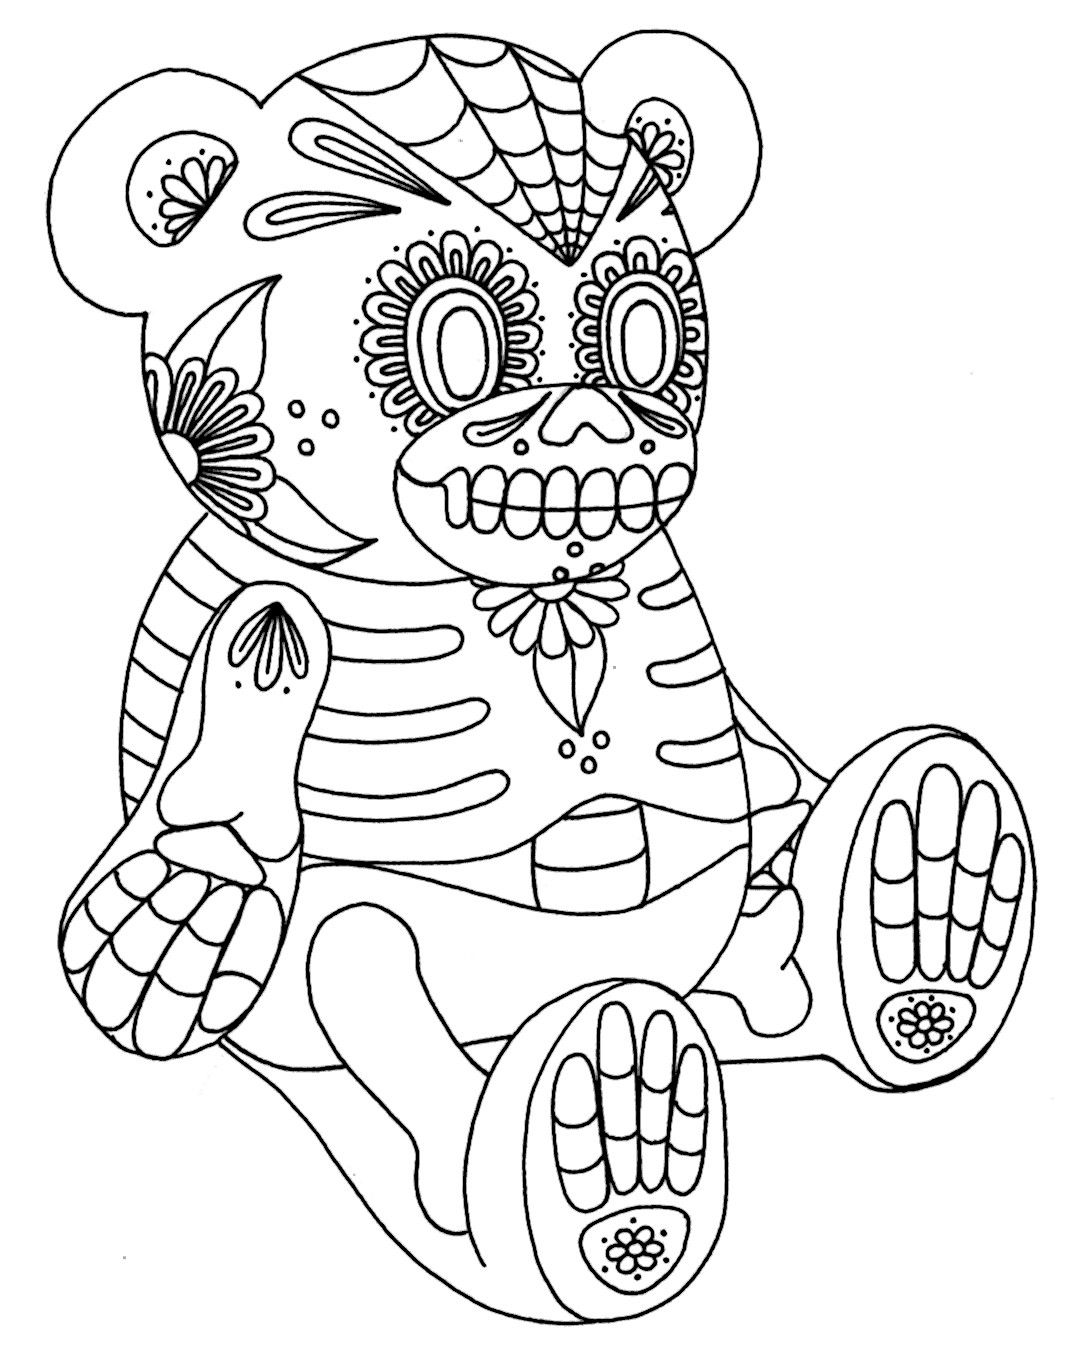 free color in sugar skull Sugar Skull Coloring Pages free